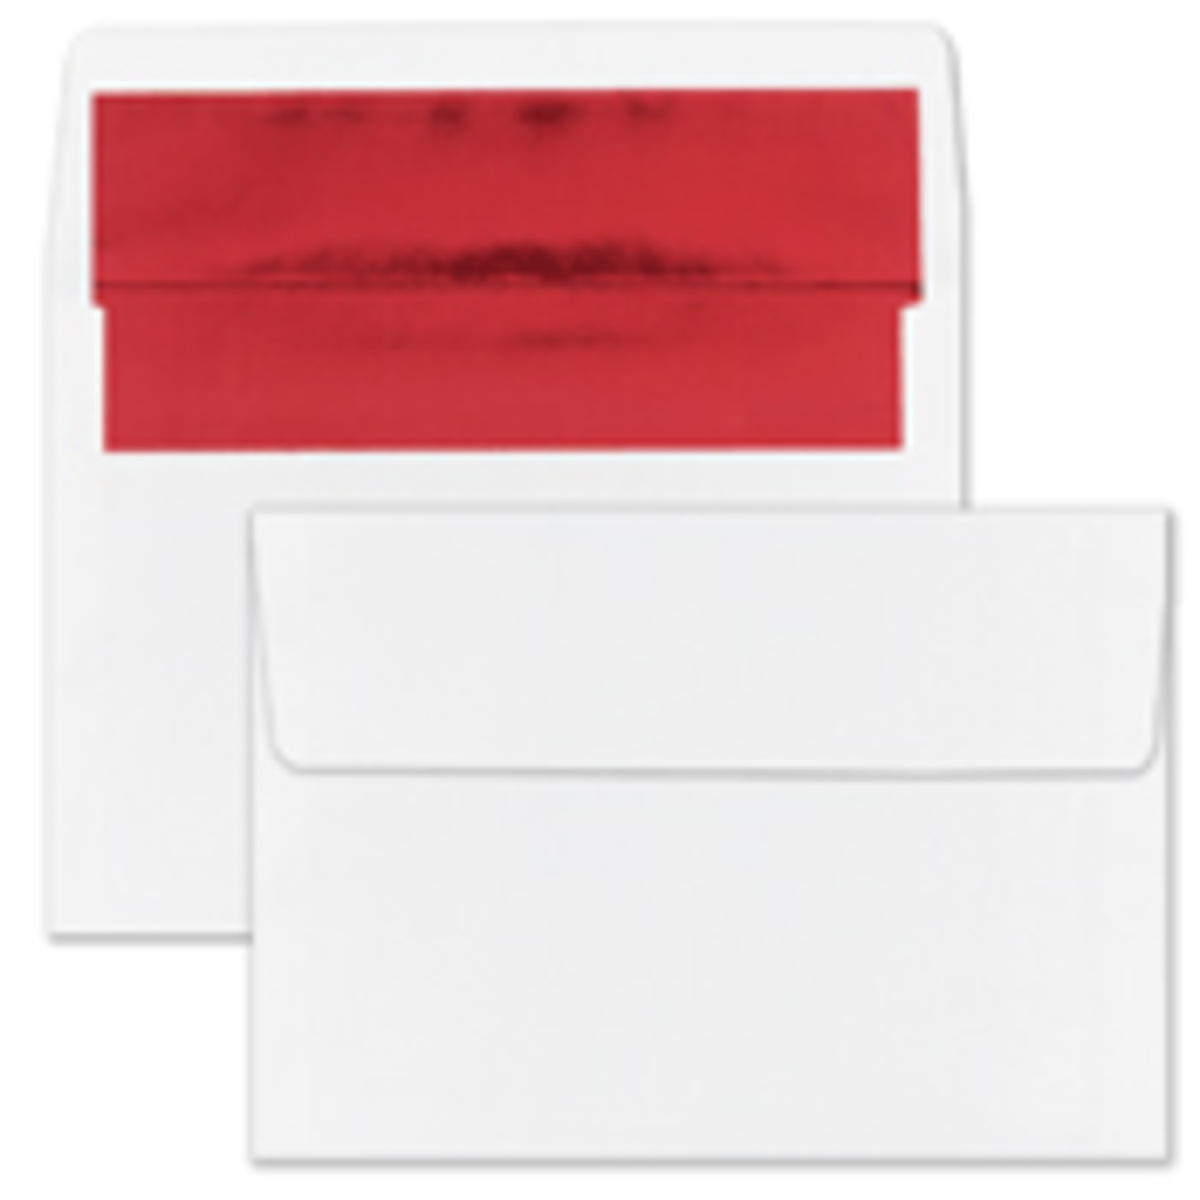 Recycled Red Foil Lined White Envelope - Blank